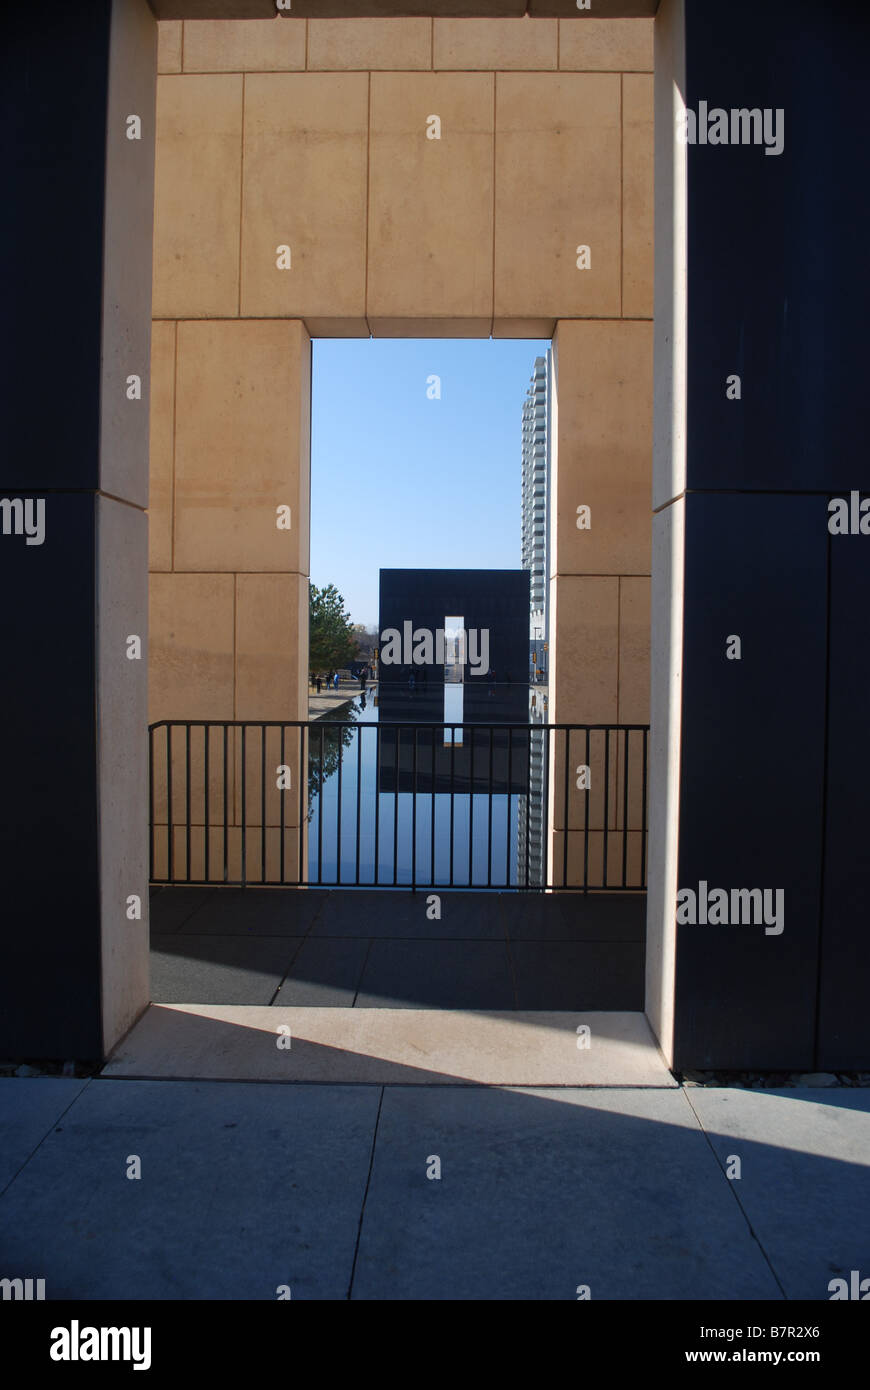 Oklahoma City Bombing Memorial - memorial wall and relecting pool Stock Photo